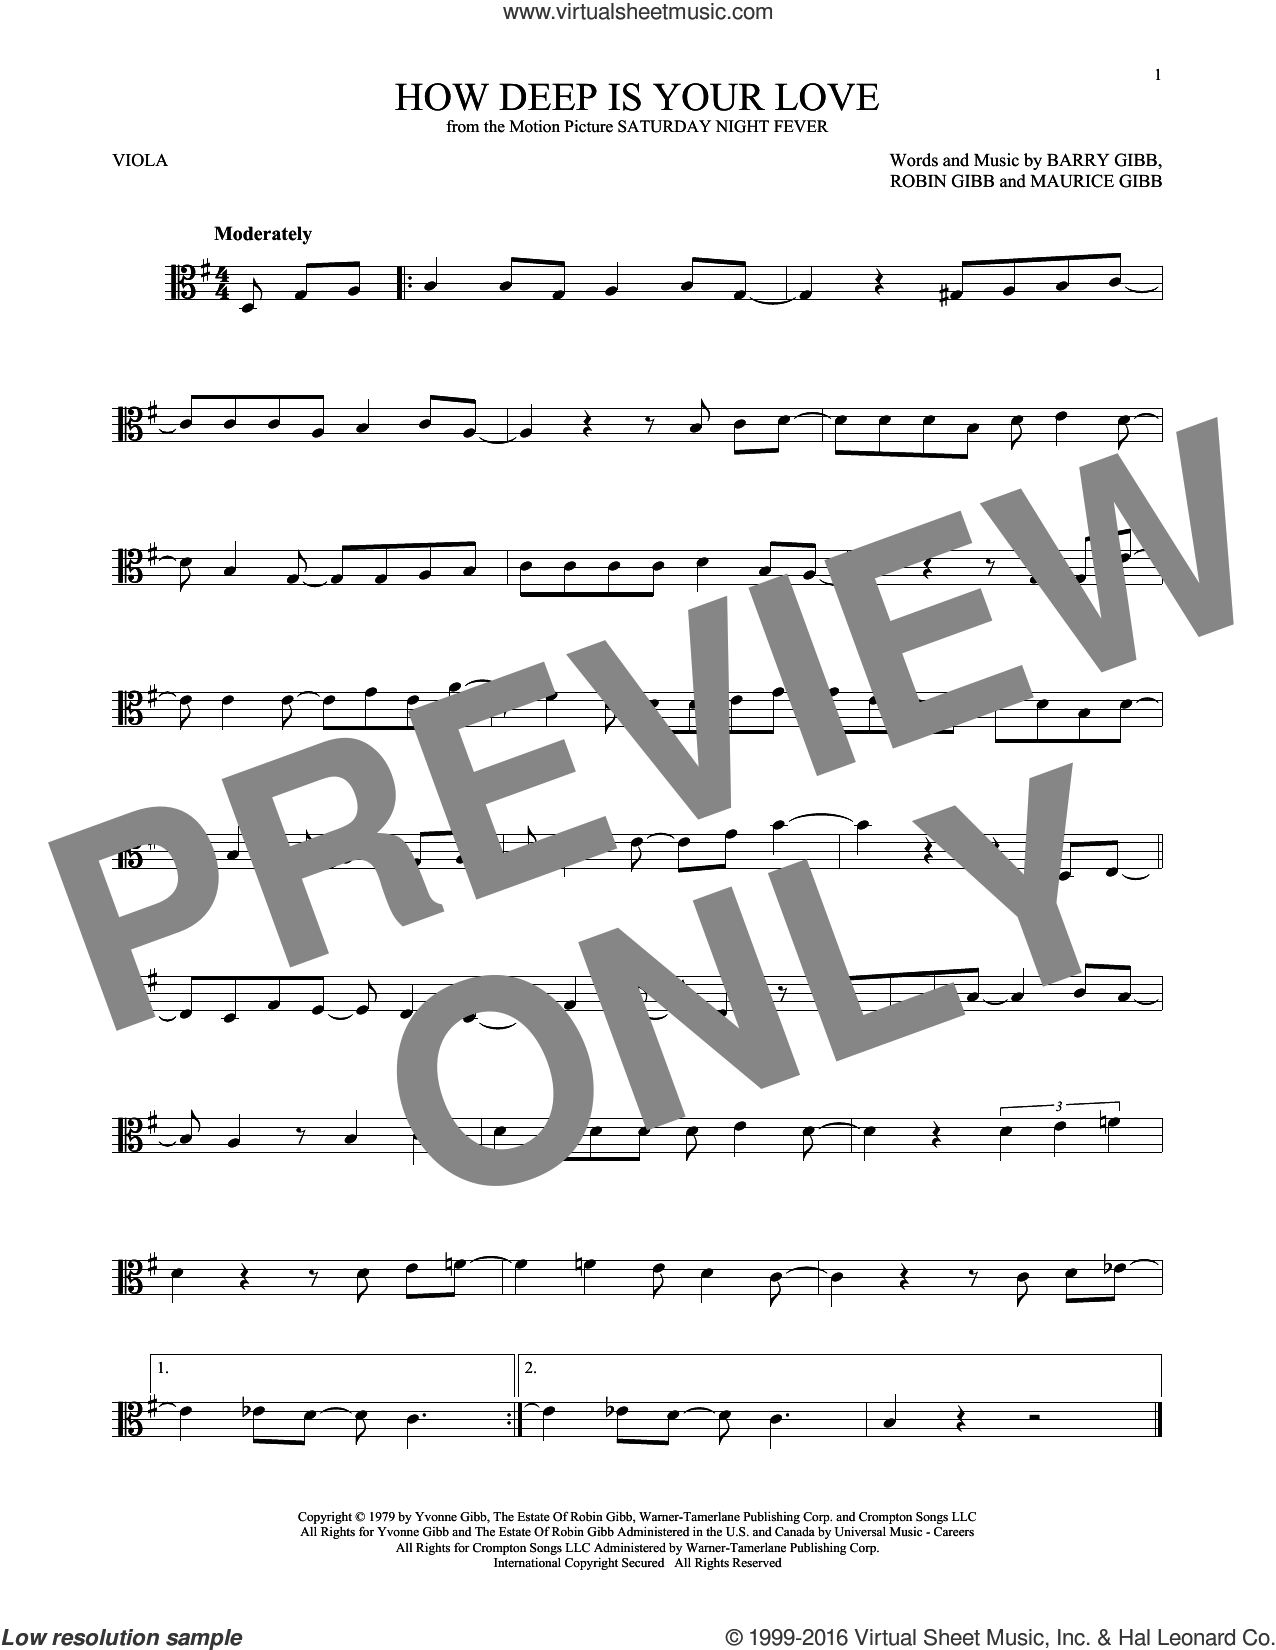 How Deep Is Your Love sheet music for viola solo by Robin Gibb, Bee Gees, Barry Gibb and Maurice Gibb. Score Image Preview.